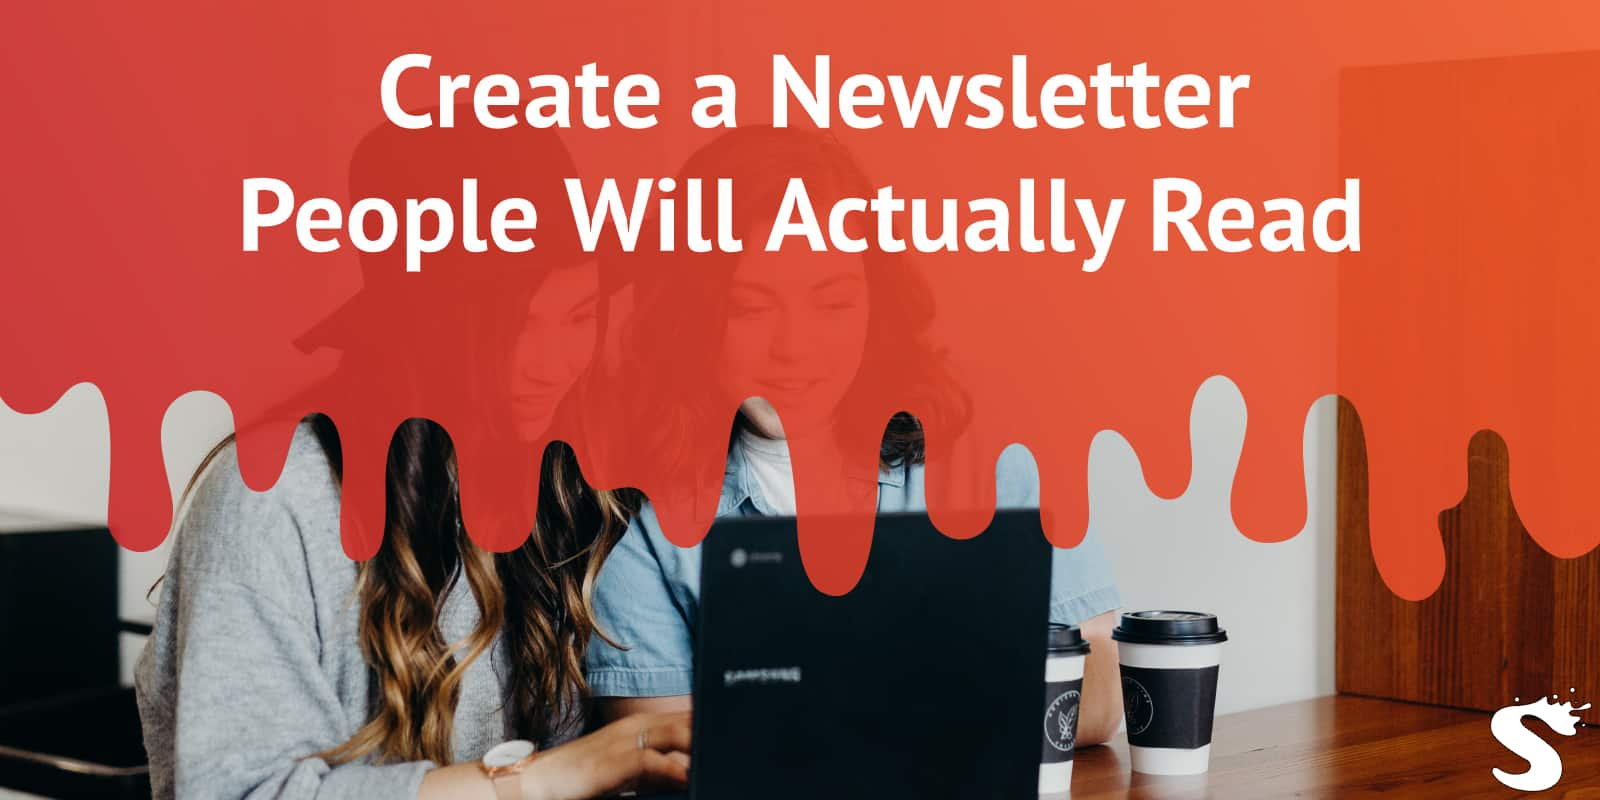 Create a newsletter people will read